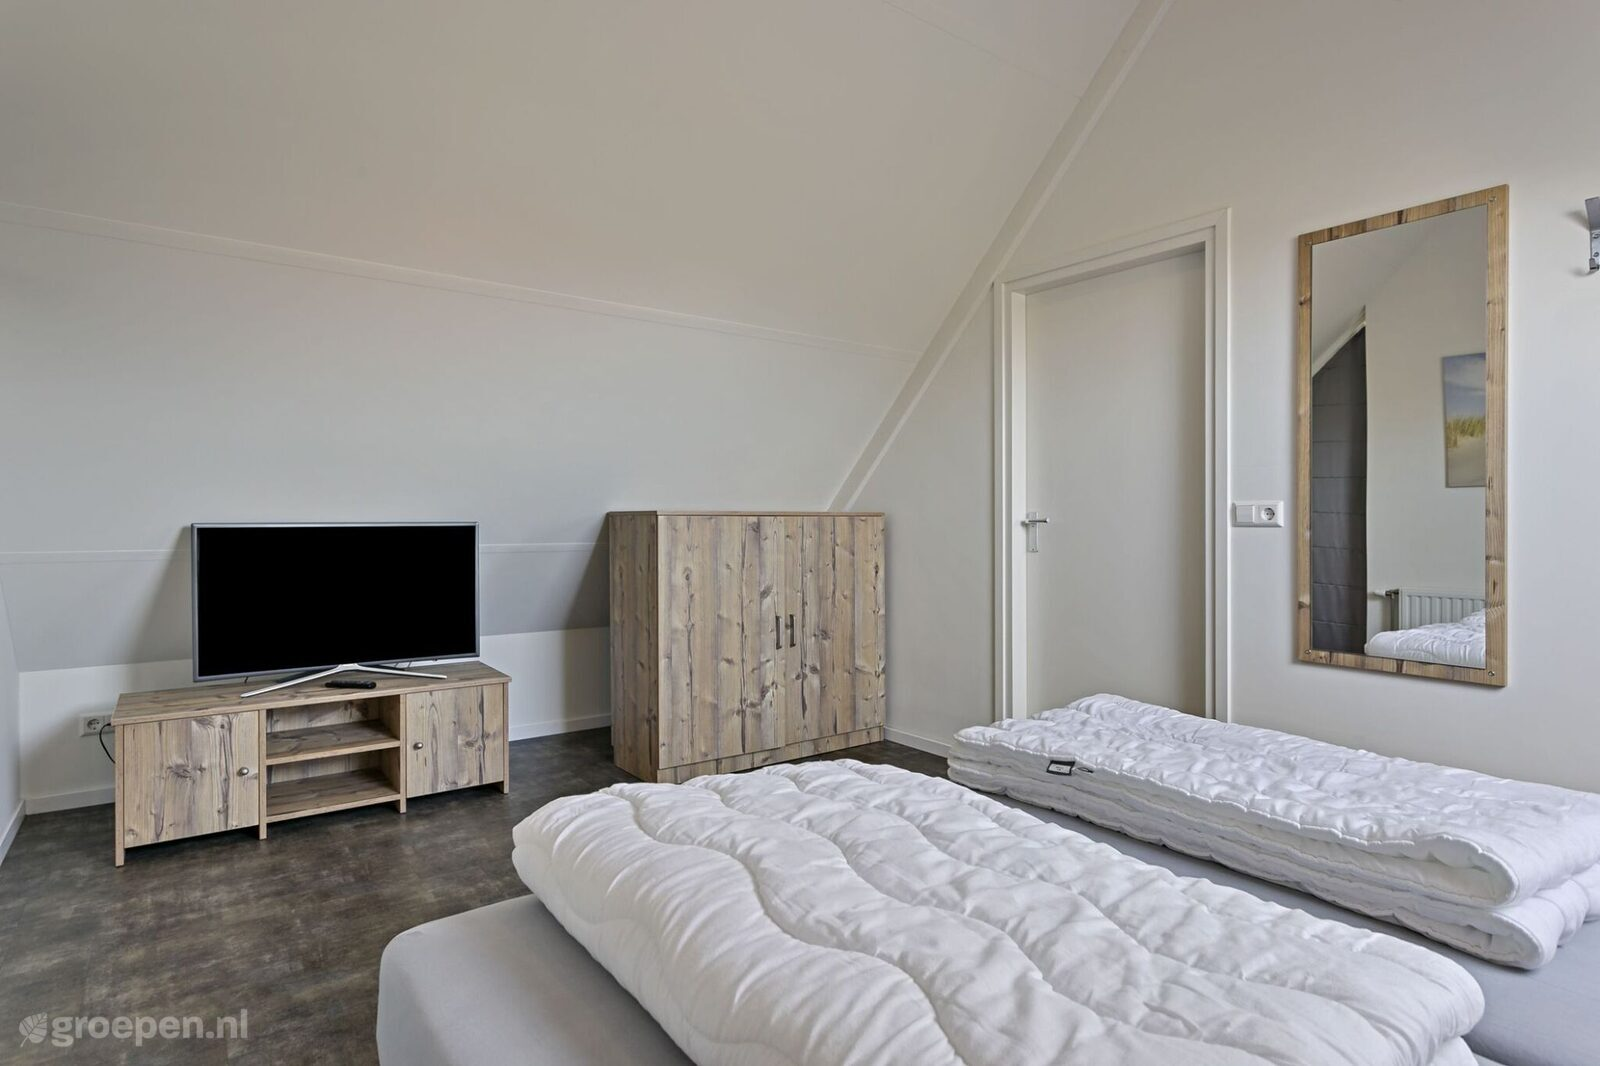 Group accommodation Ouddorp